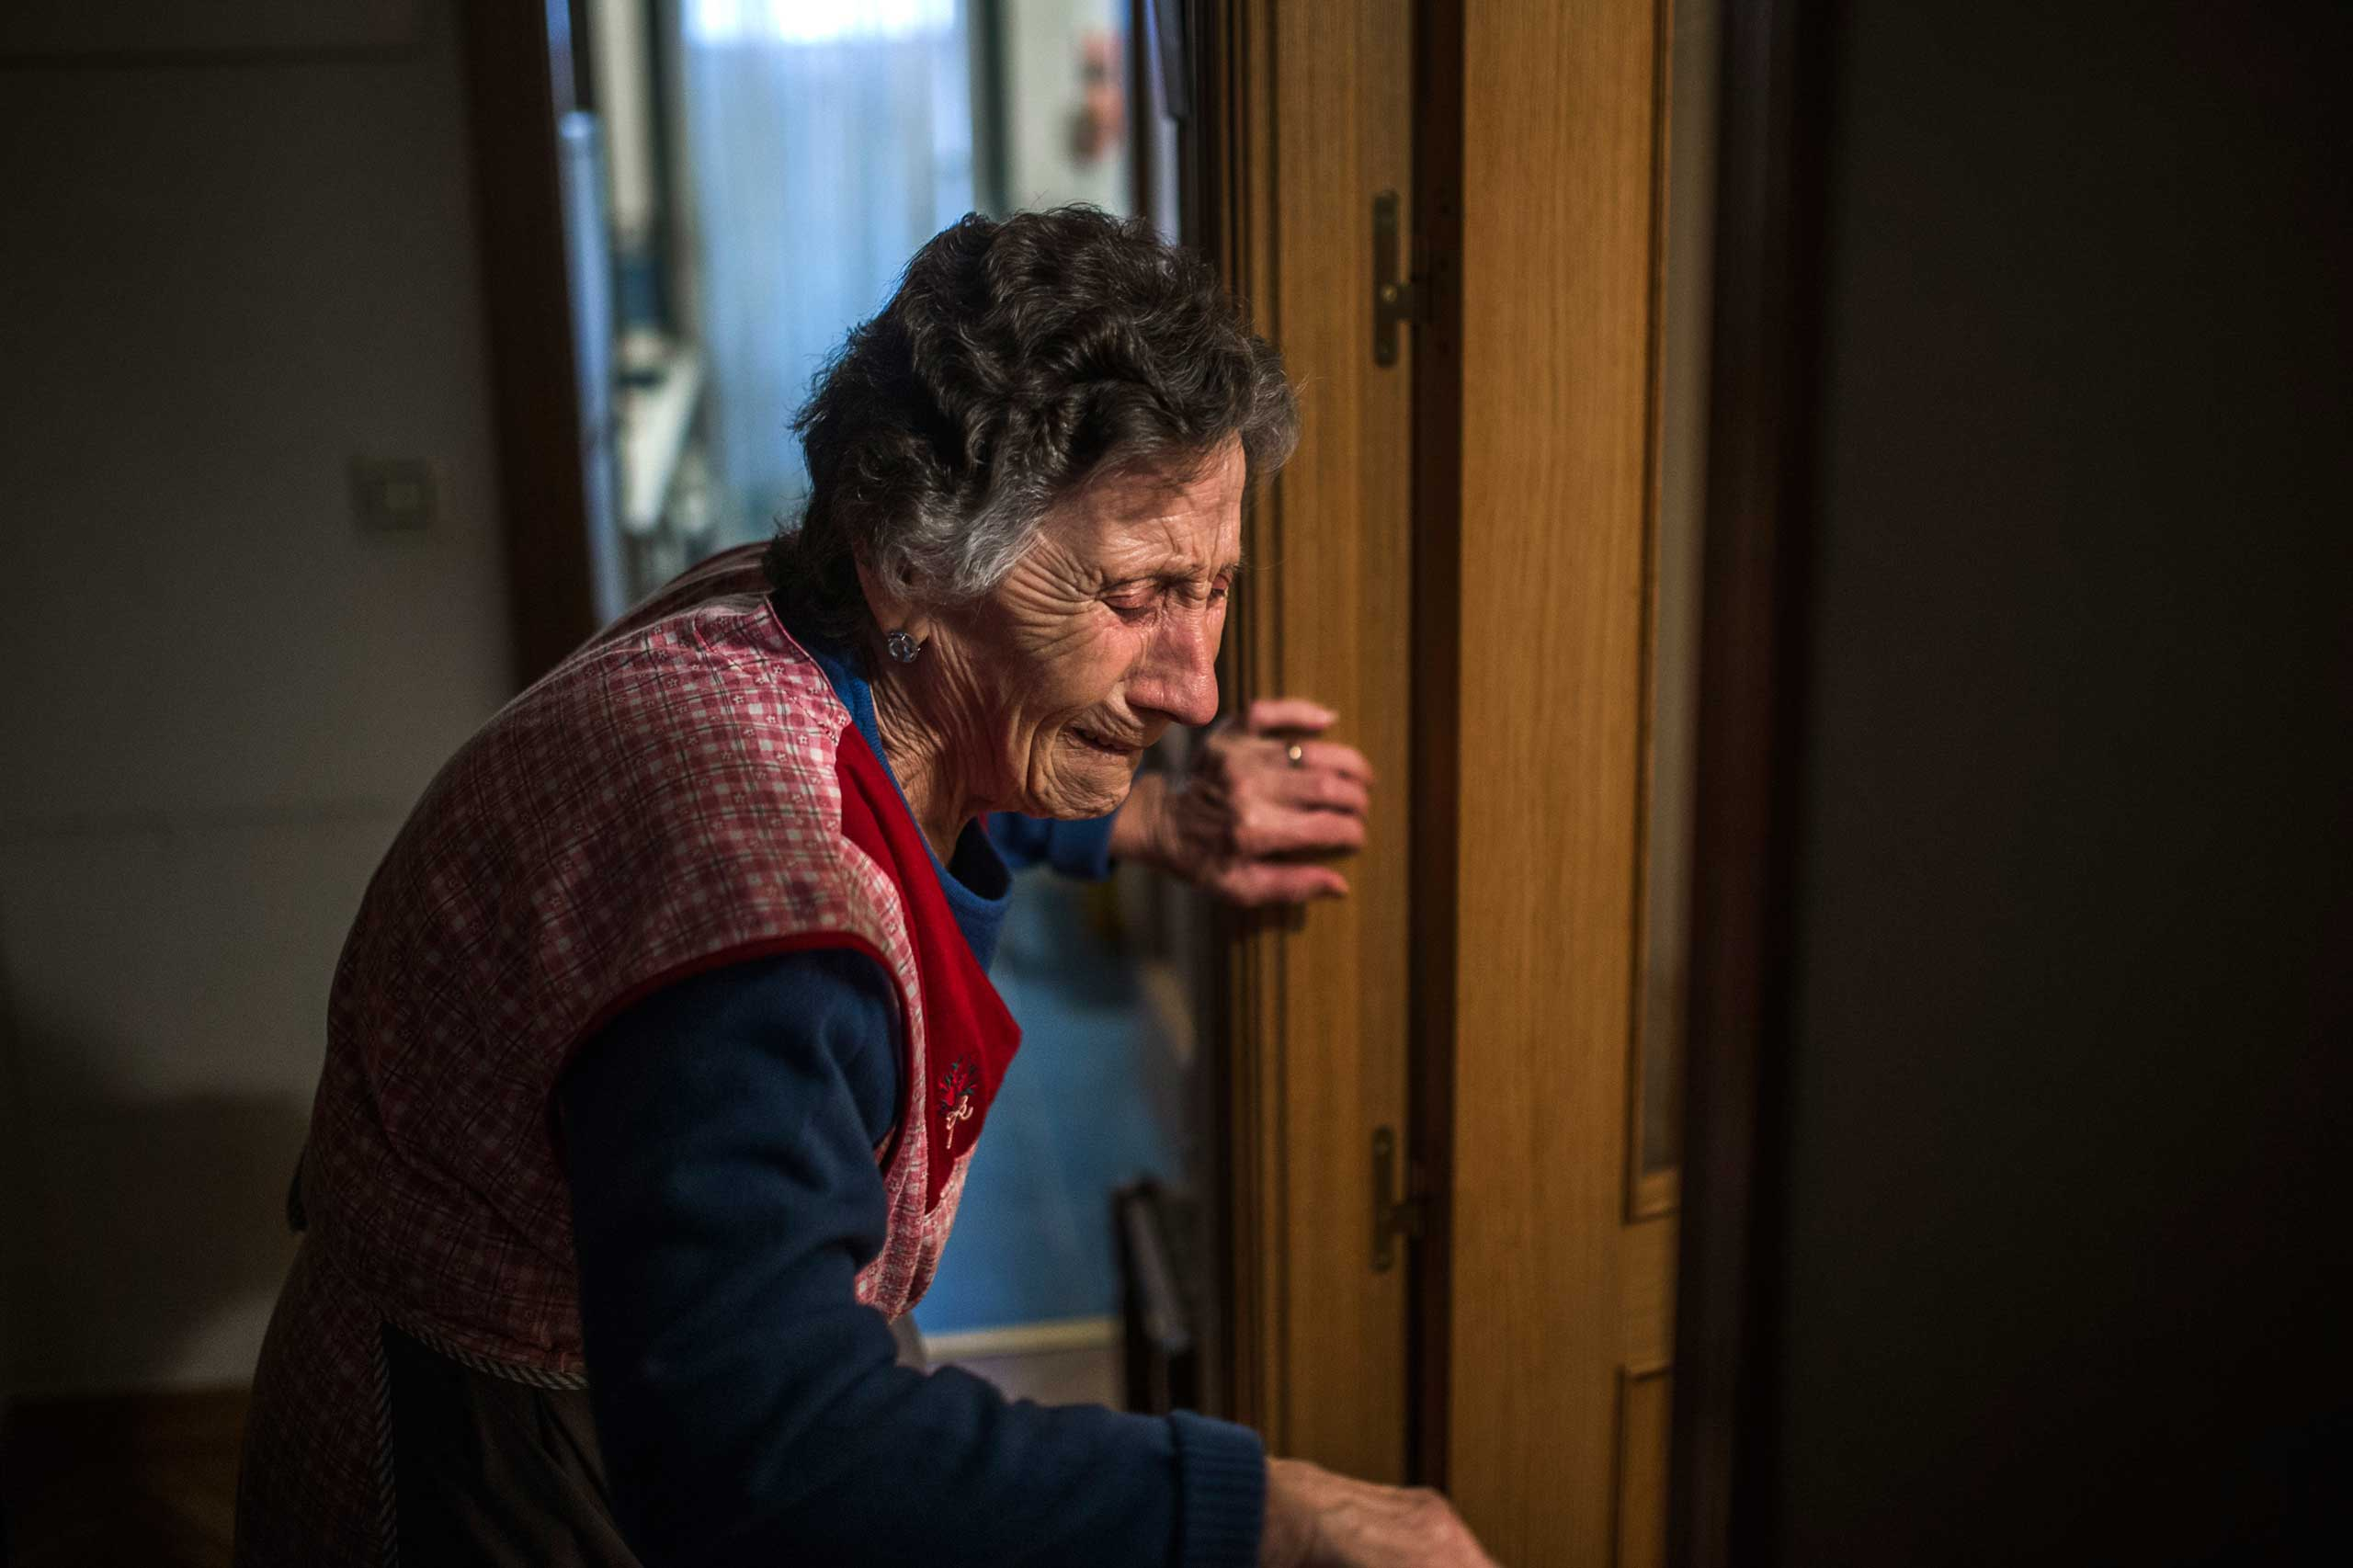 Carmen Martinez Ayuso, 85, cries during her eviction in Madrid. Nov. 2014.